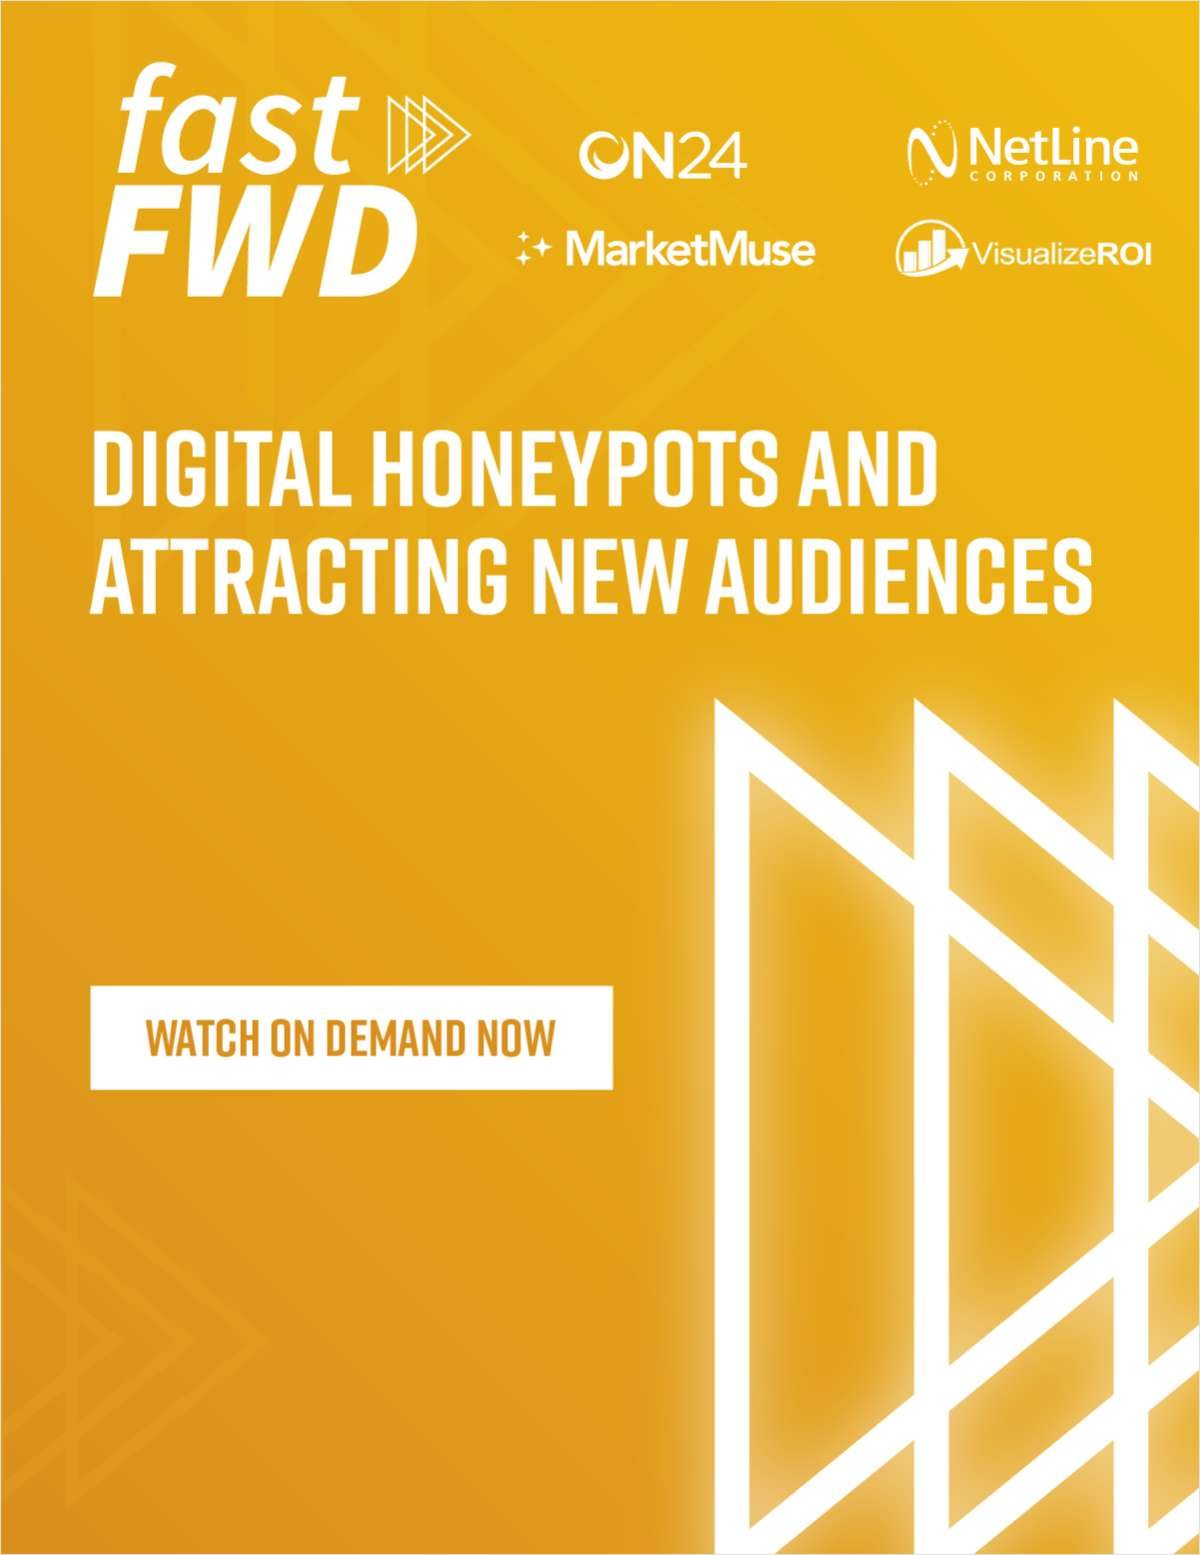 Digital Honeypots and Attracting New Audiences